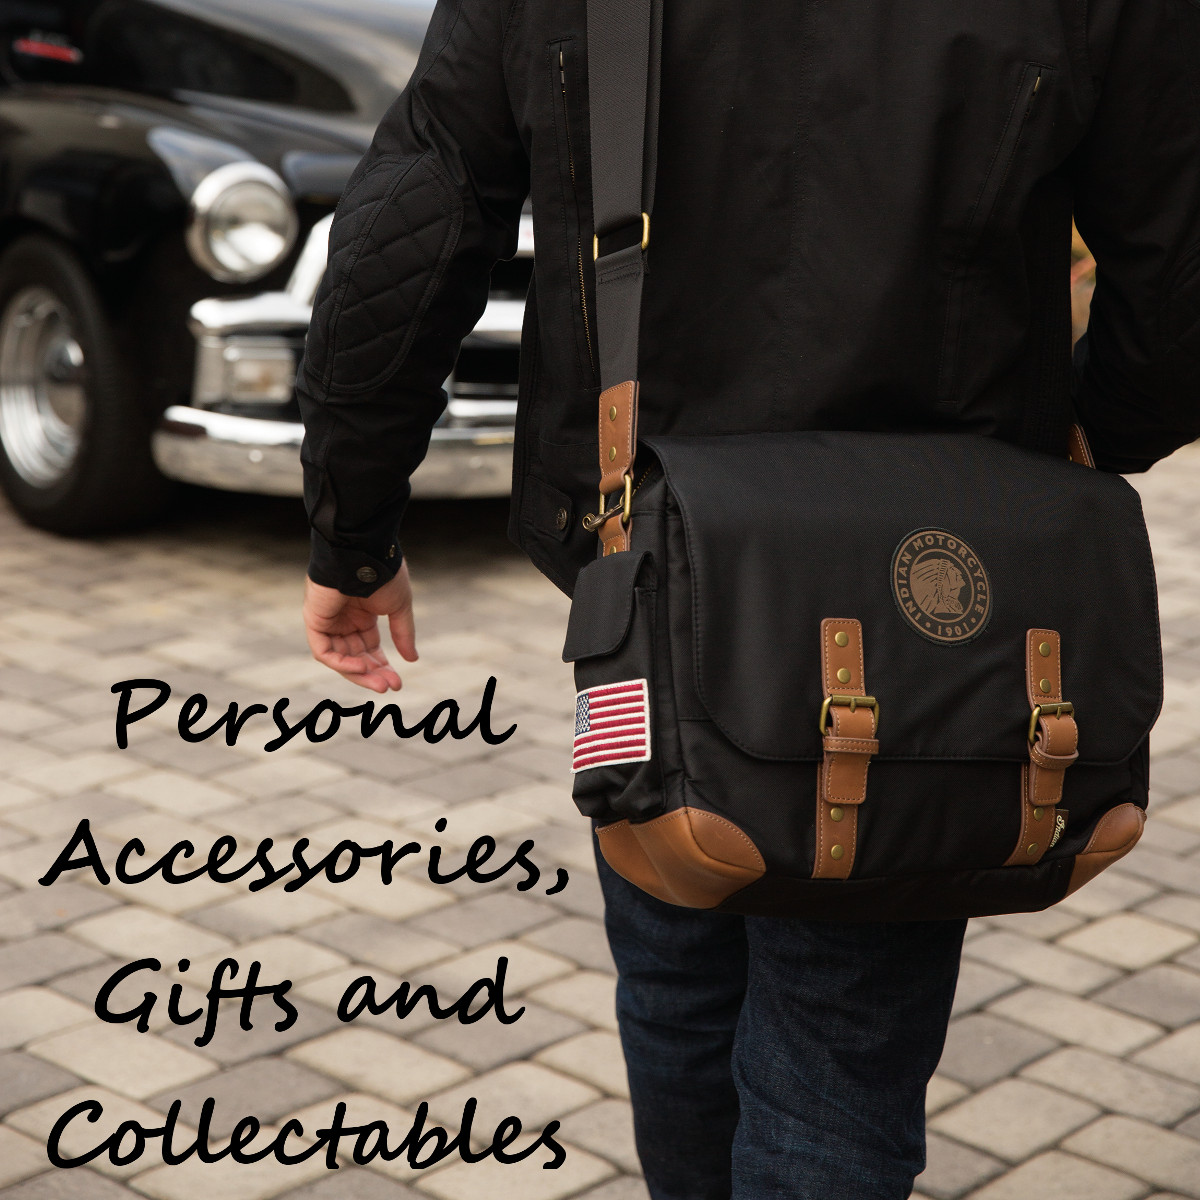 Personal Accessories Gifts and Collectables